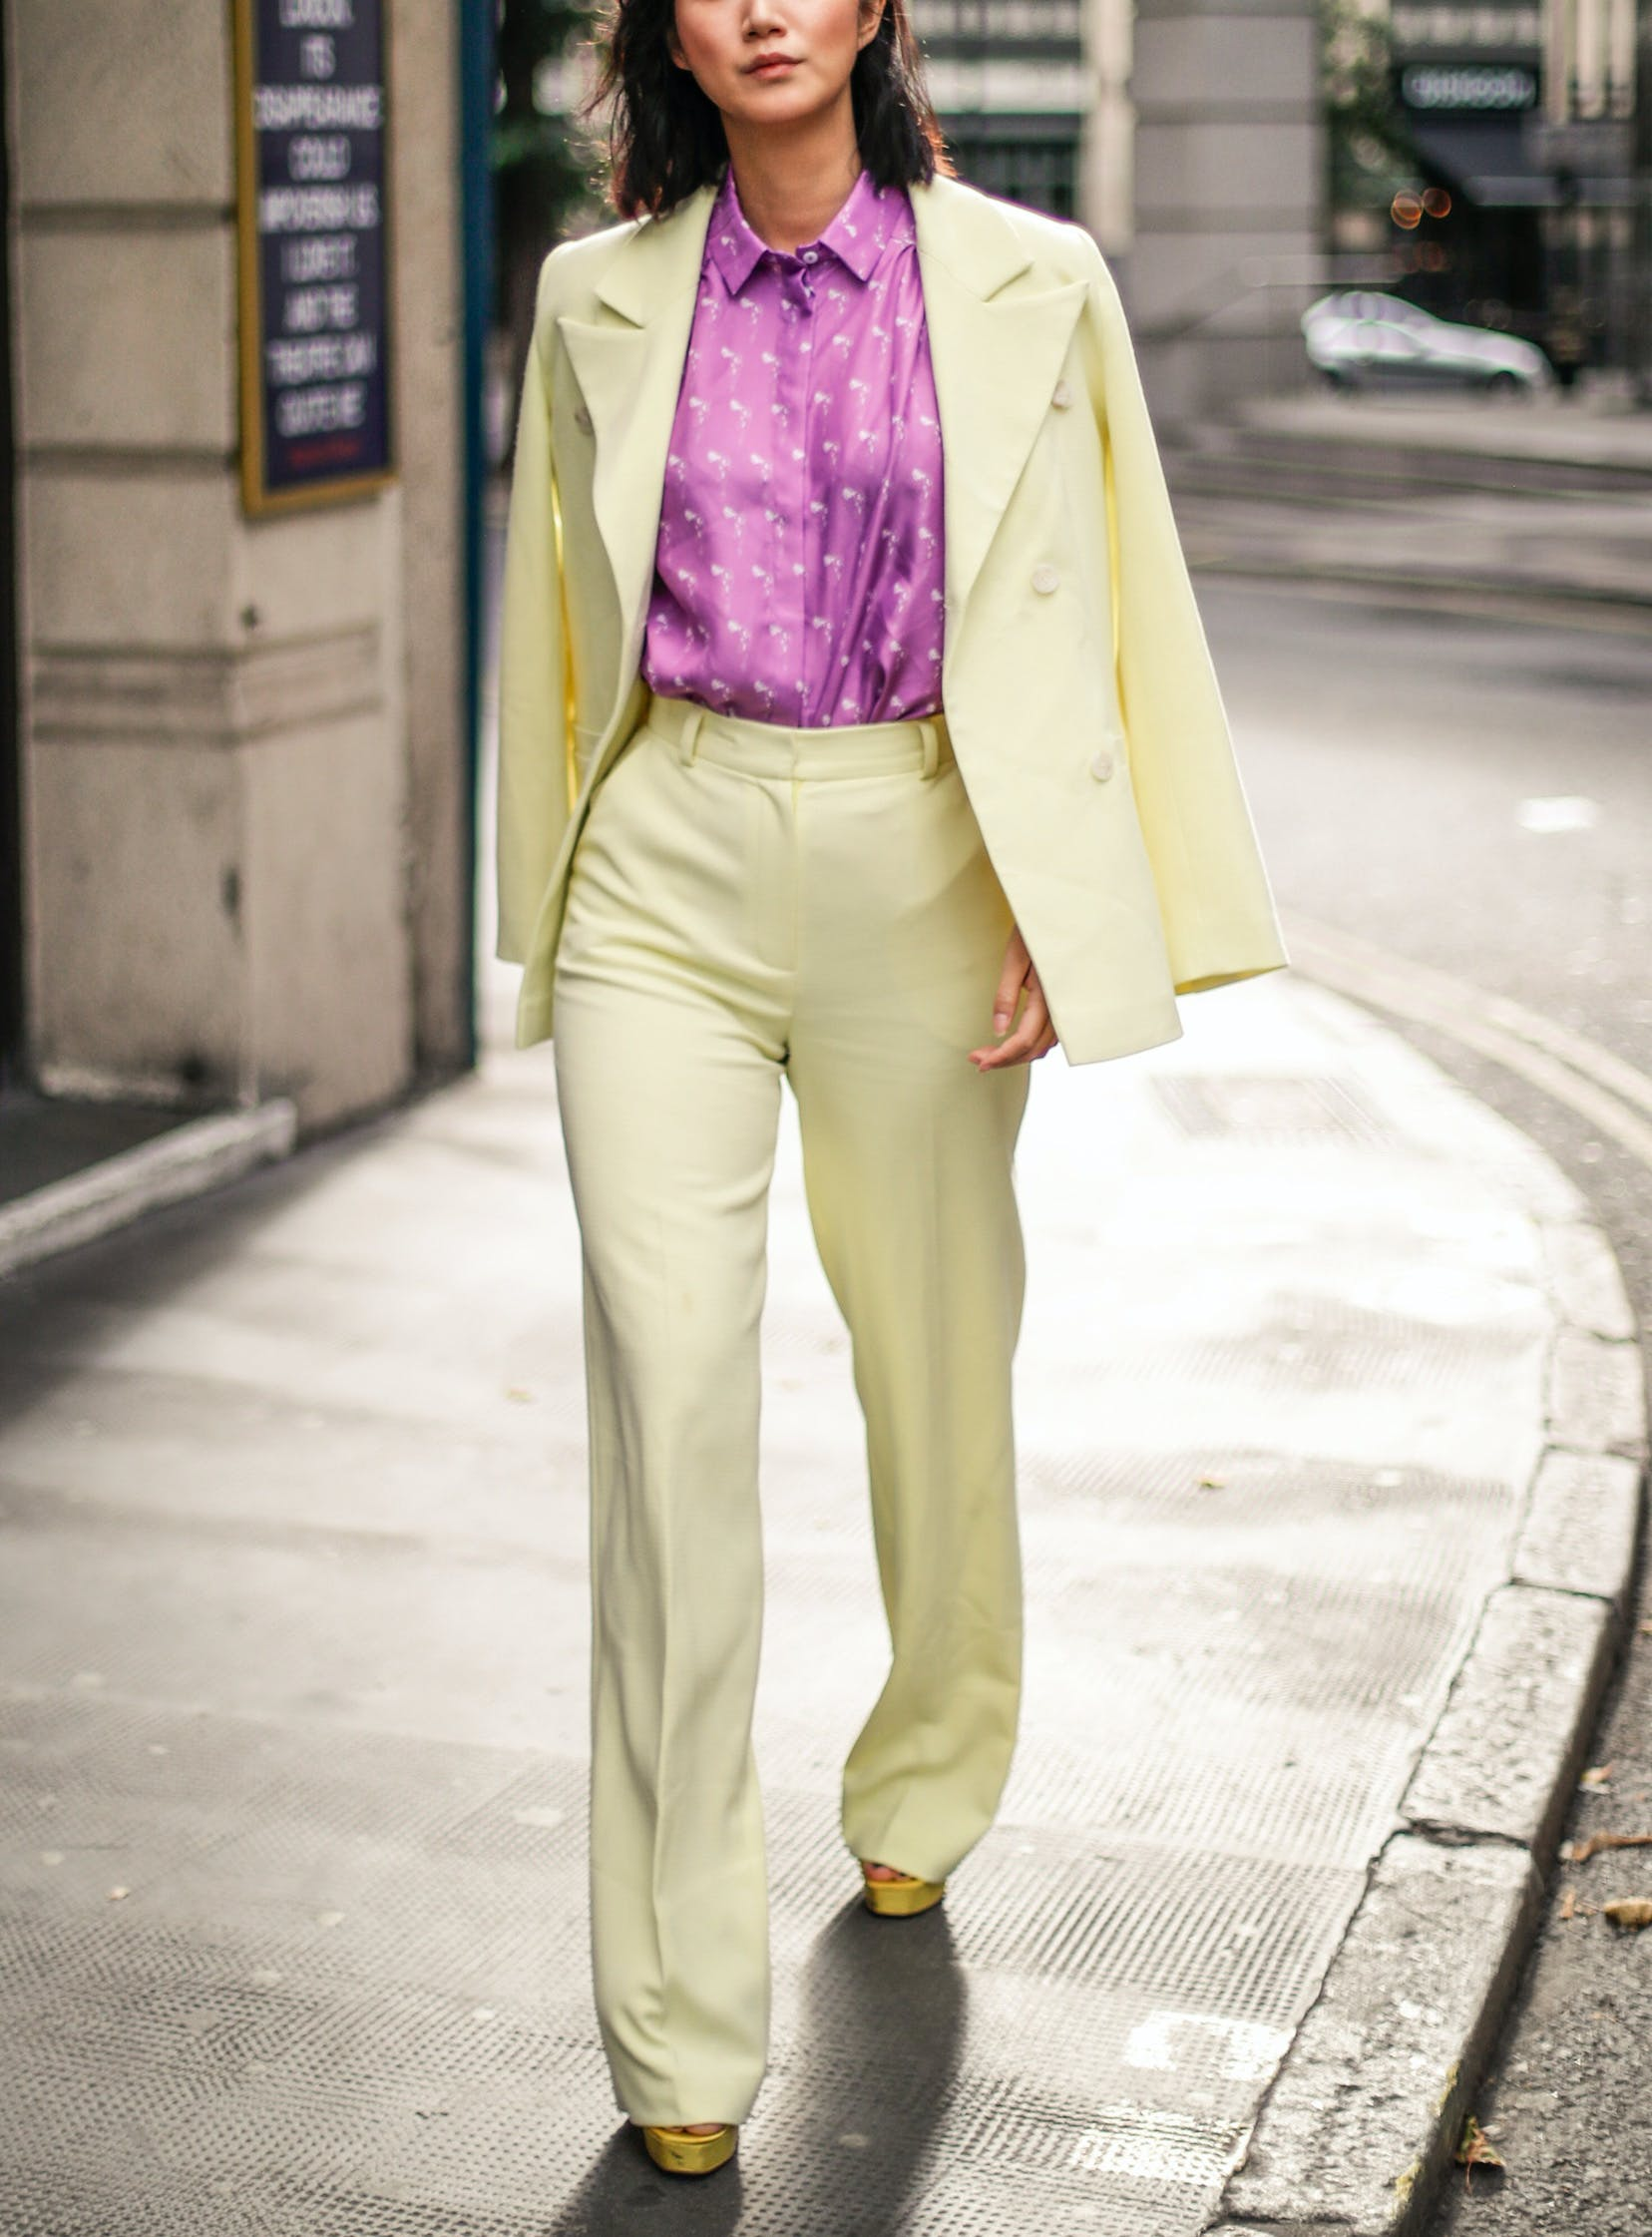 woman wearing a yellow sut with a purple blouse